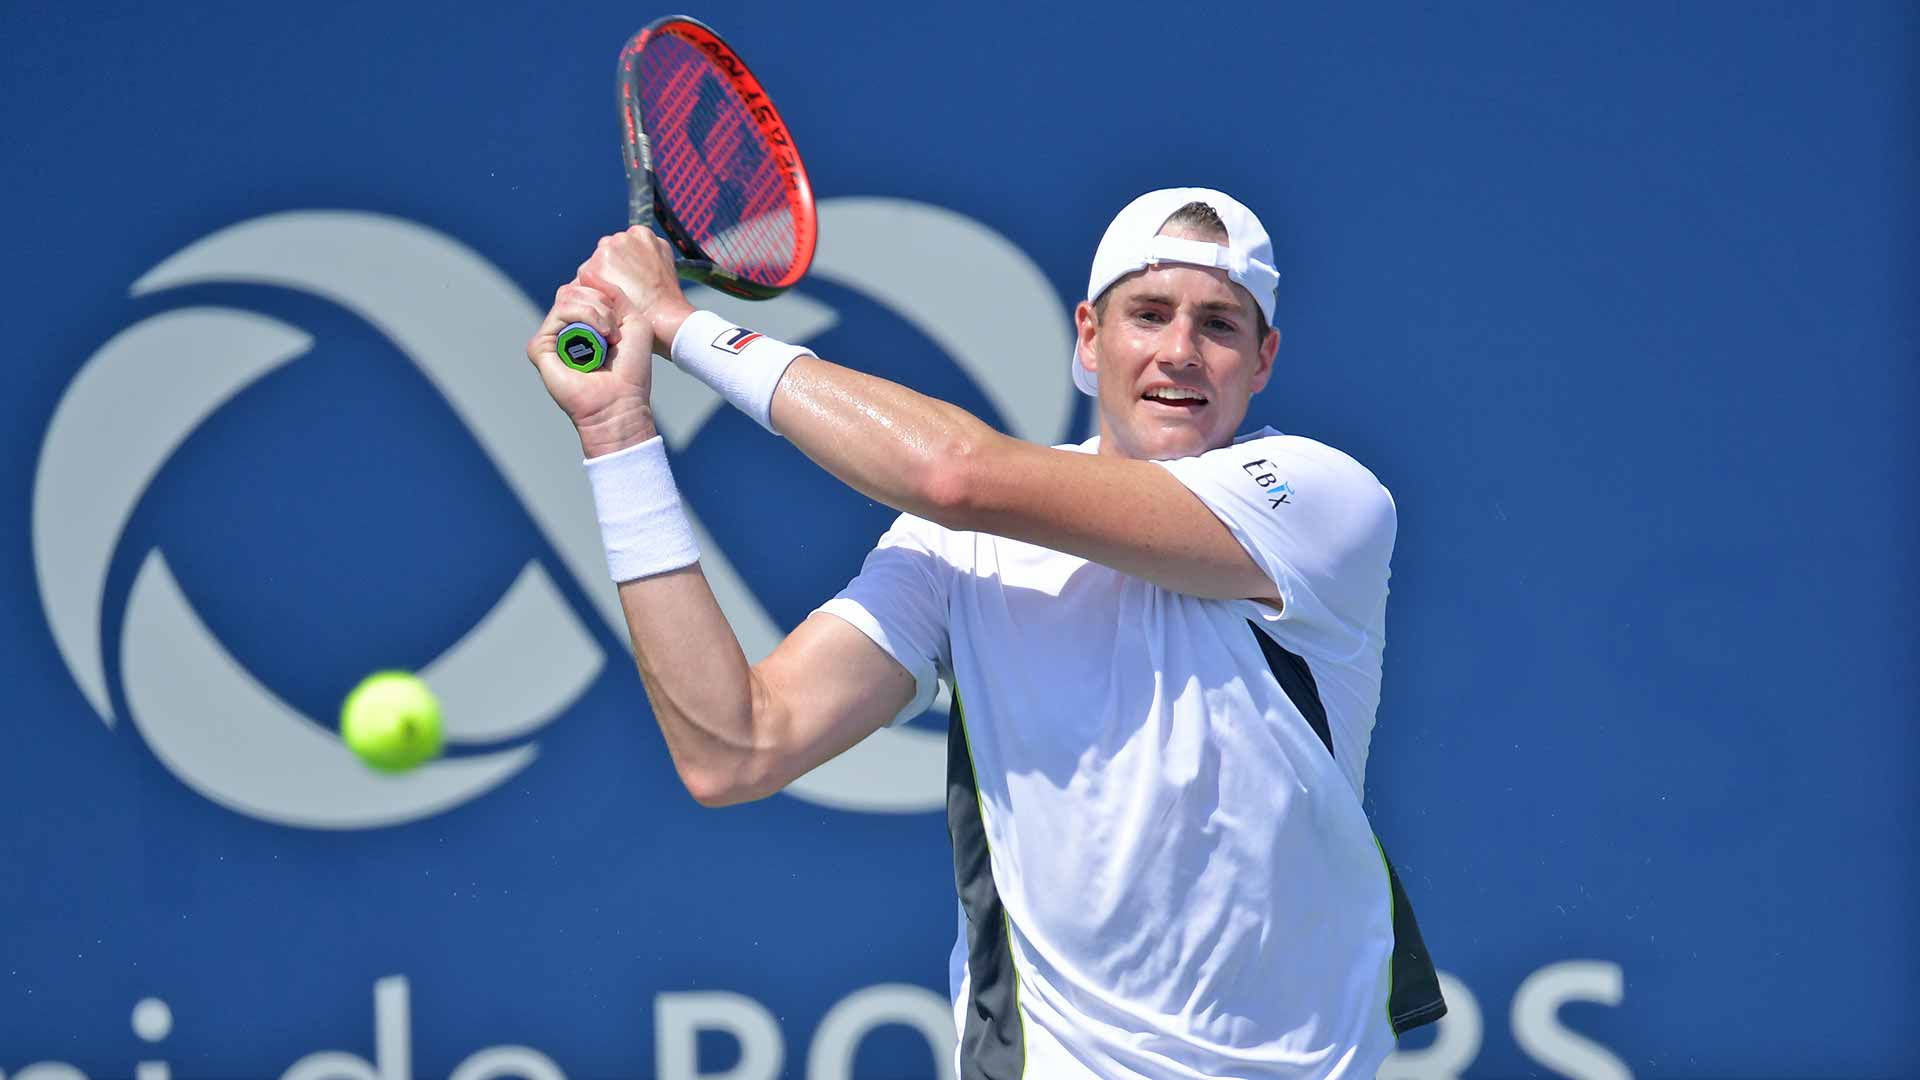 <a href='https://www.atptour.com/en/players/john-isner/i186/overview'>John Isner</a> hits a backhand in Montreal.